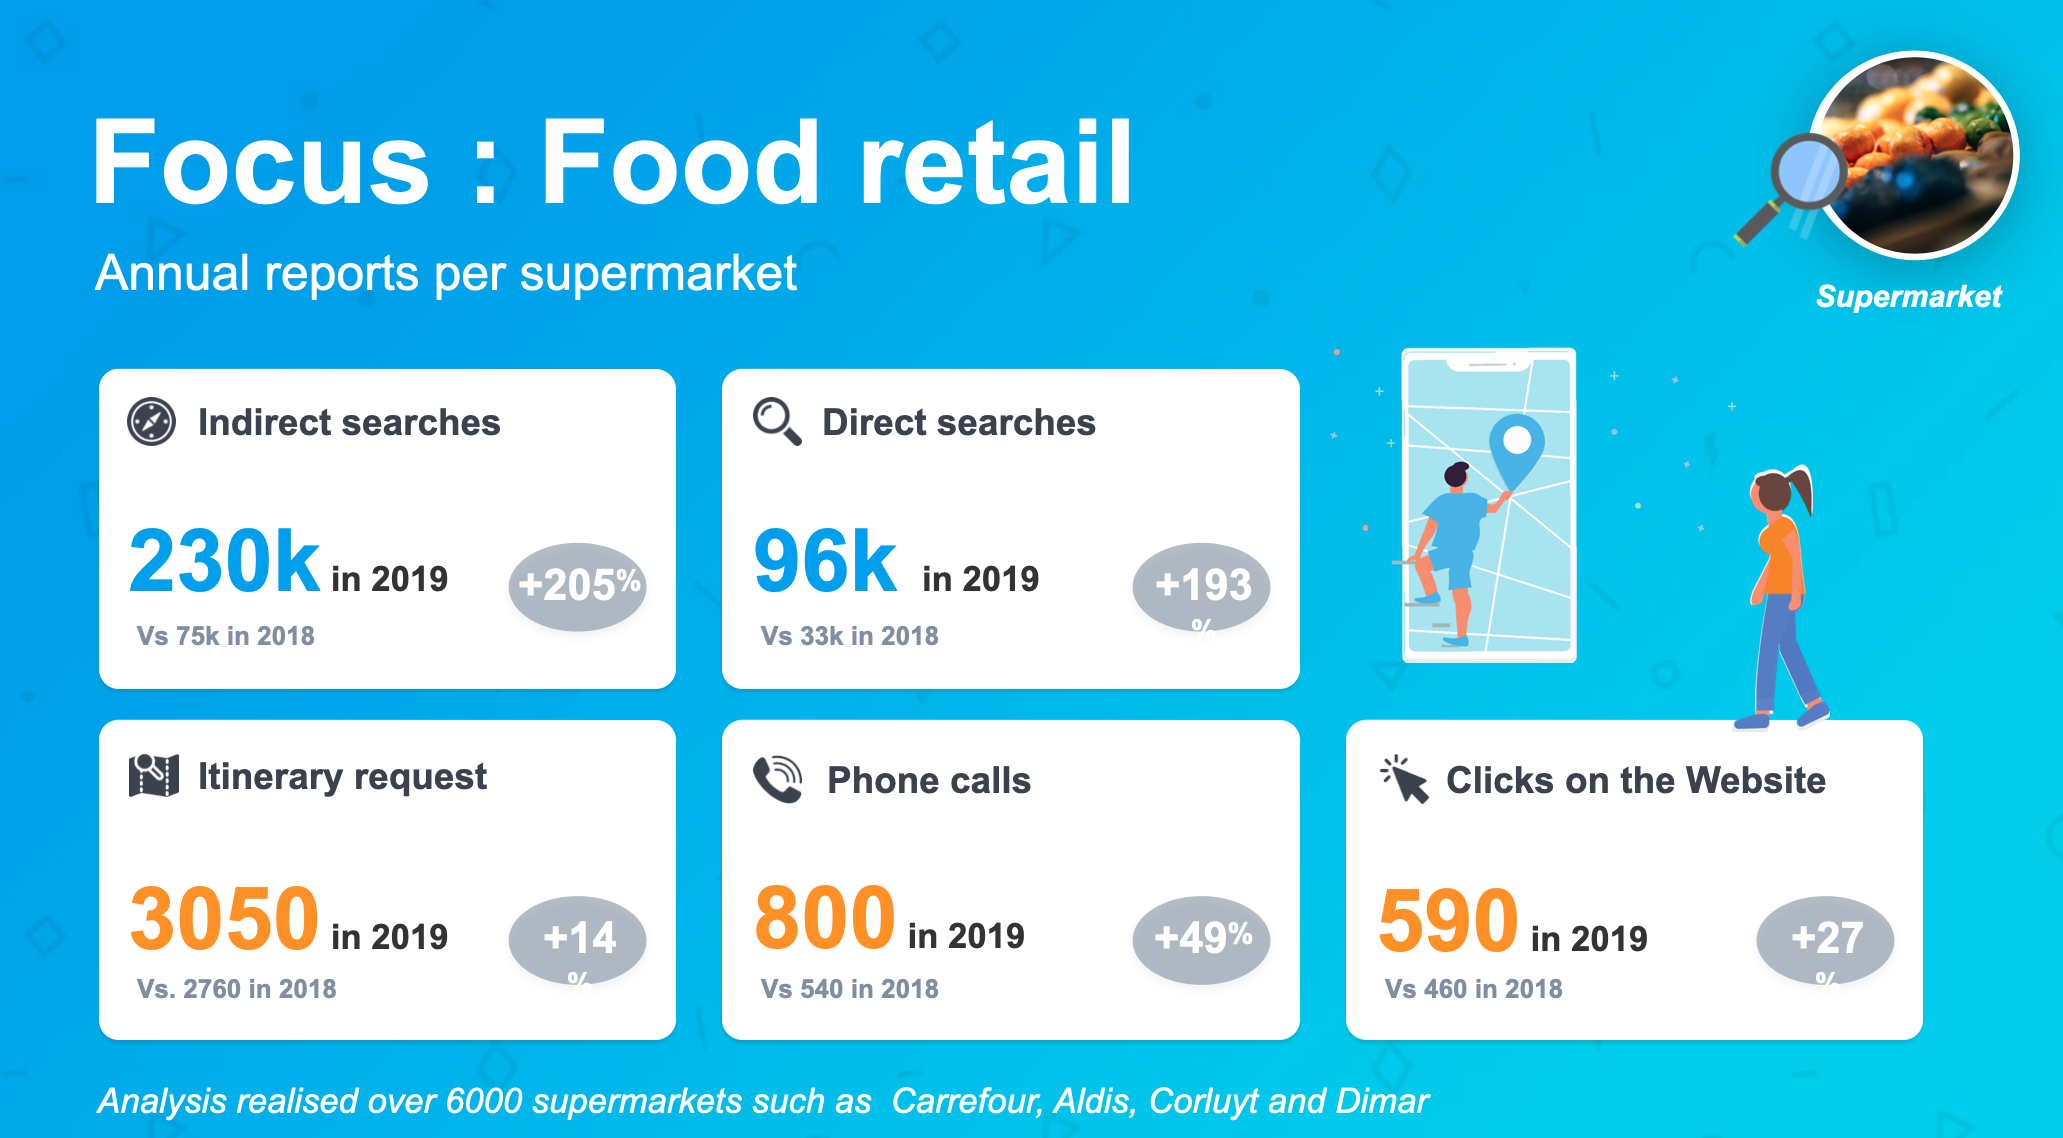 Data about food retail stores